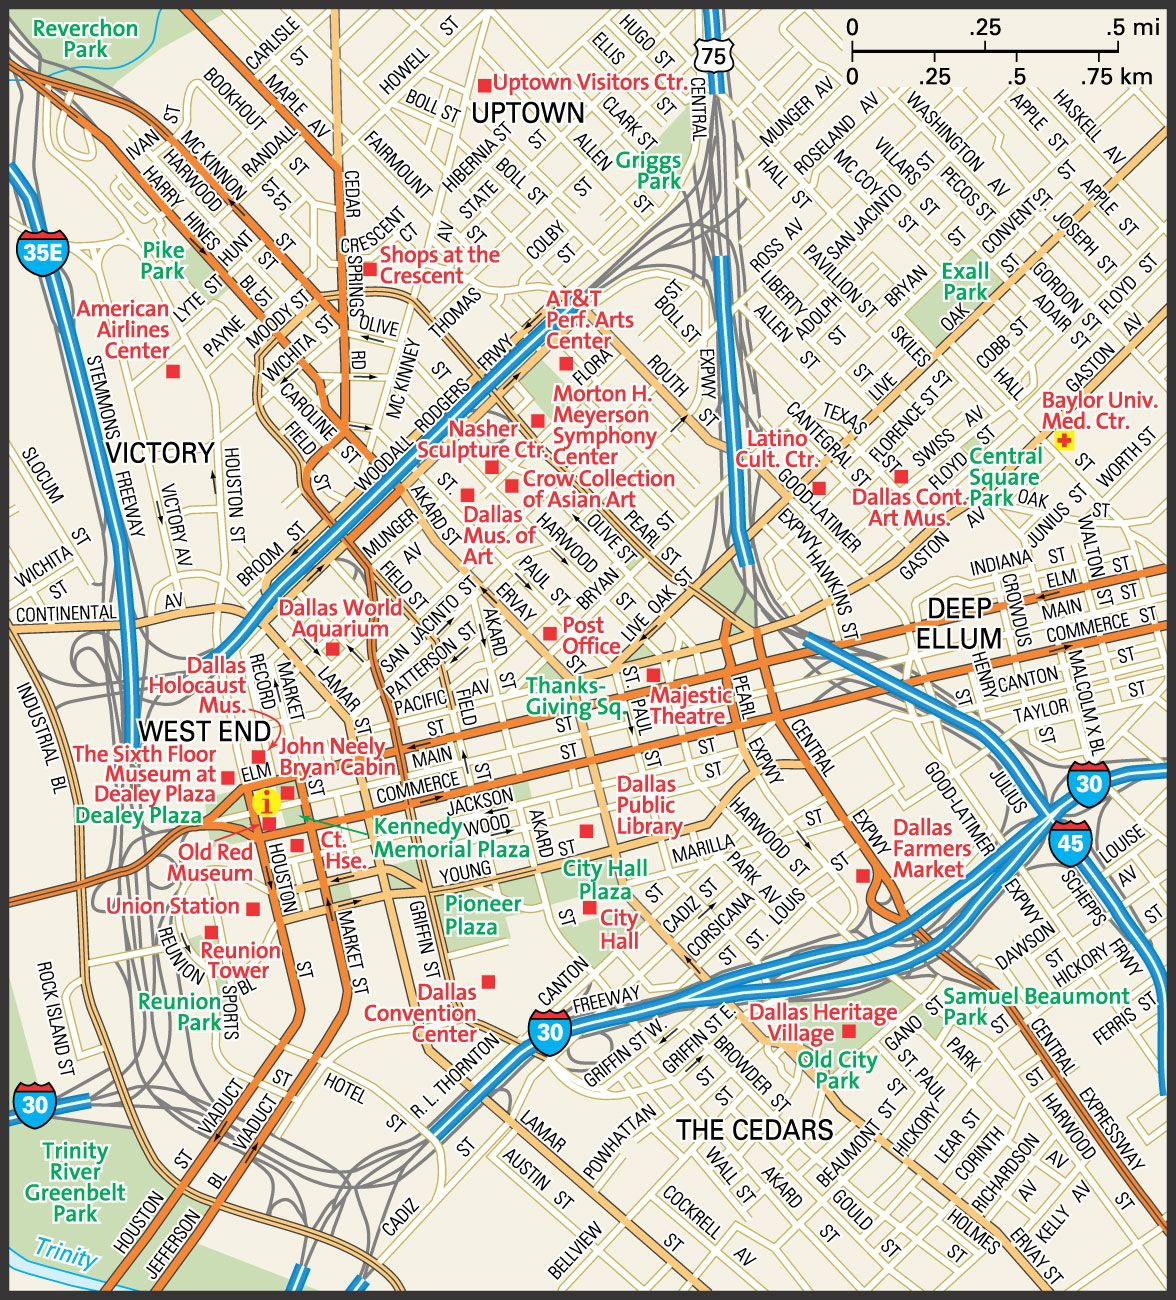 Downtown Dallas Map and Guide downtown Dallas street map